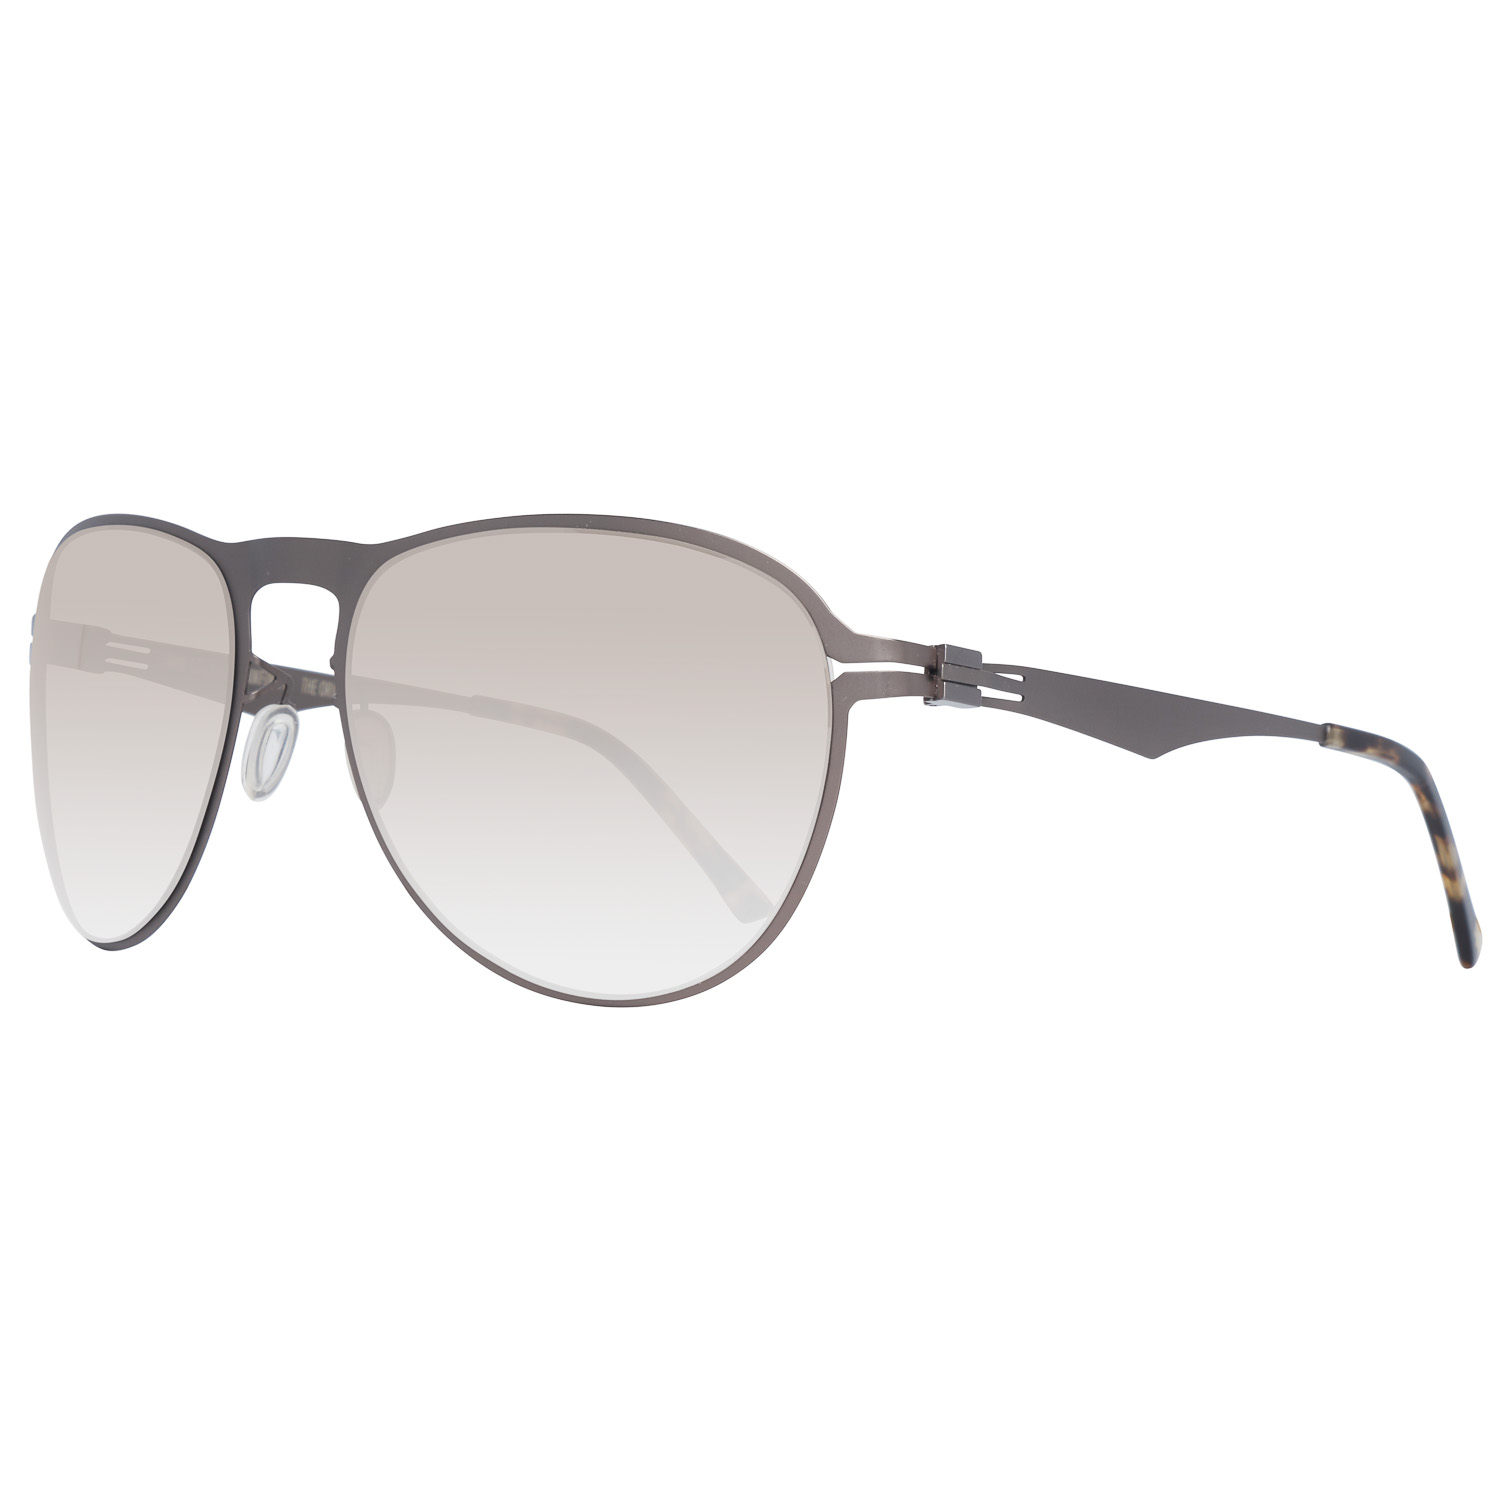 Greater Than Infinity Sunglasses GT021 S02 57 Gunmetal